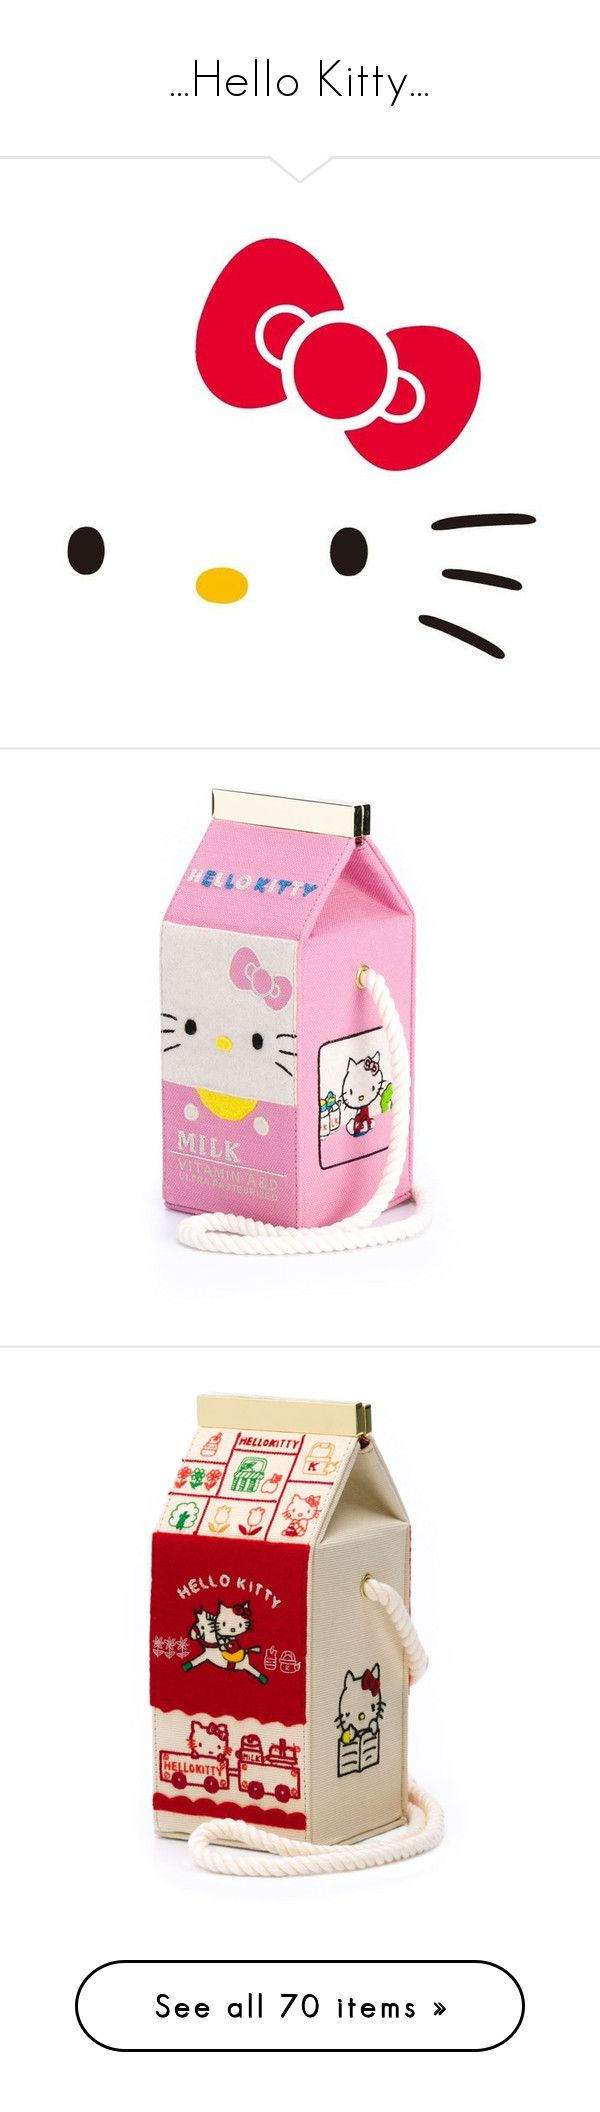 """...Hello Kitty..."" by marciahofmant ❤ liked on Polyvore featuring bags, handbags, pink hello kitty handbag, crossbody purses, pink hello kitty purse, cartoon handbag, pink crossbody bag, shoulder bags, pink crossbody and multi color purse"